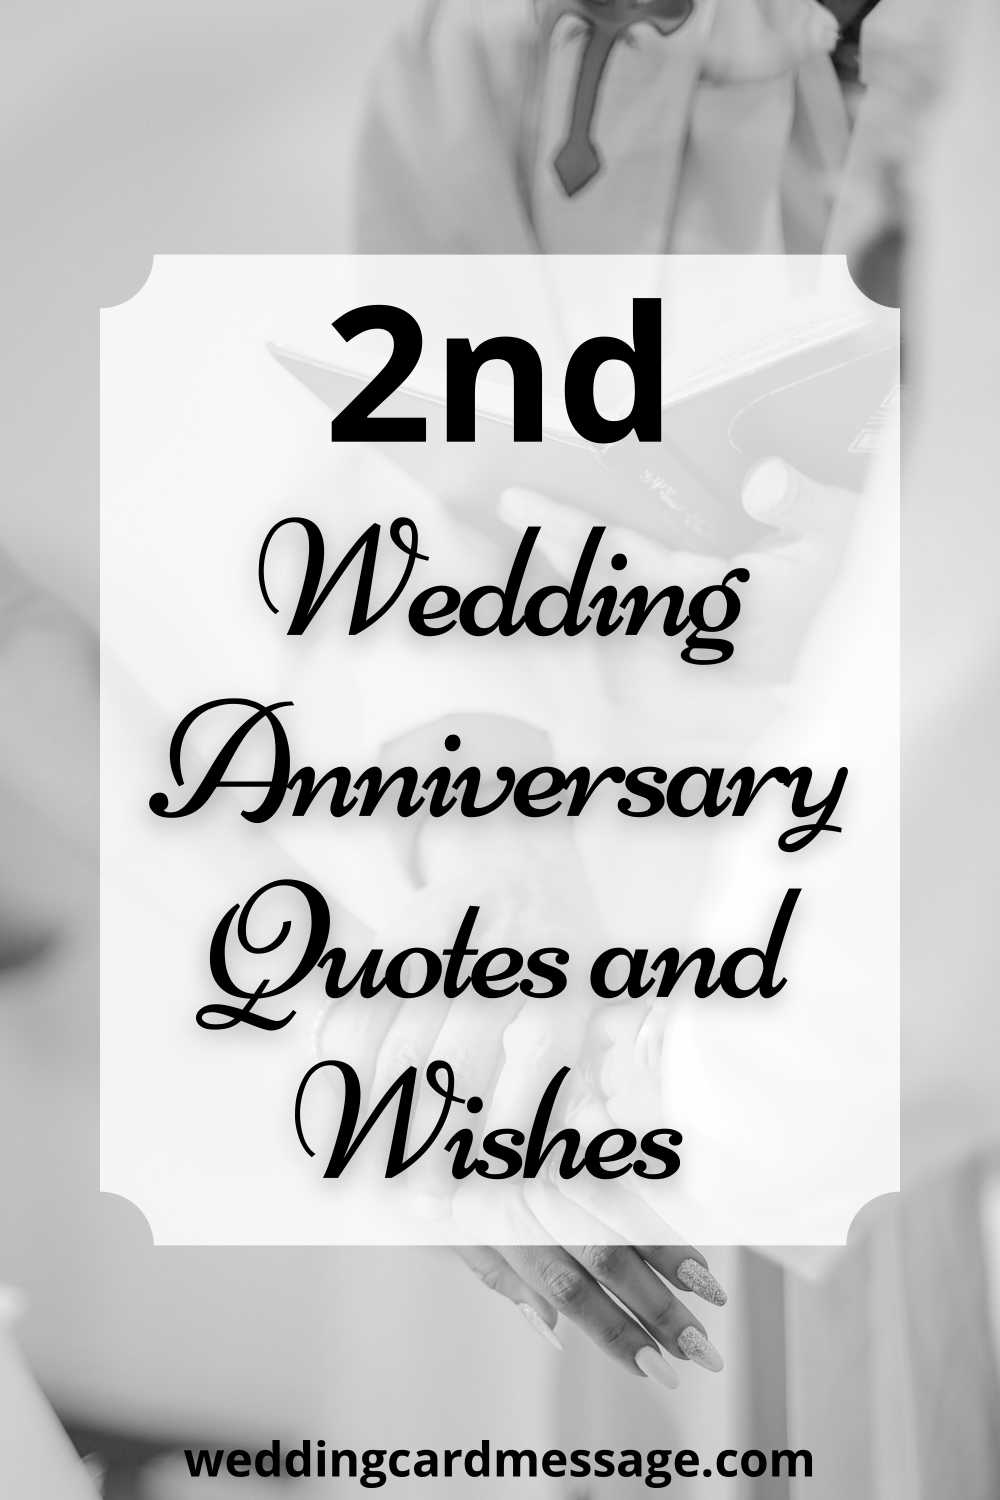 2nd anniversary quotes pinterest